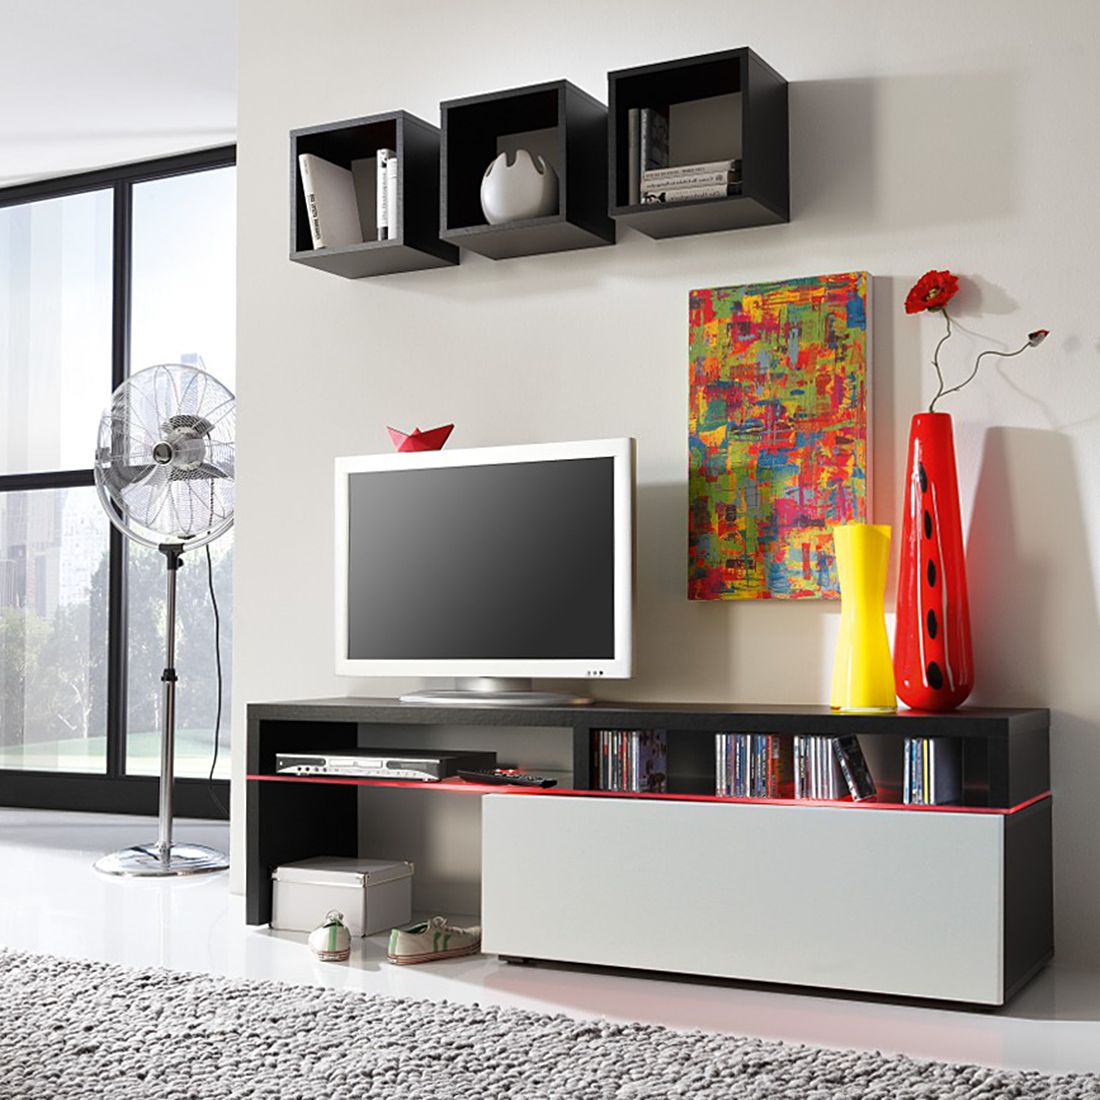 Wohnwand Elemente Style : Television guide d achat